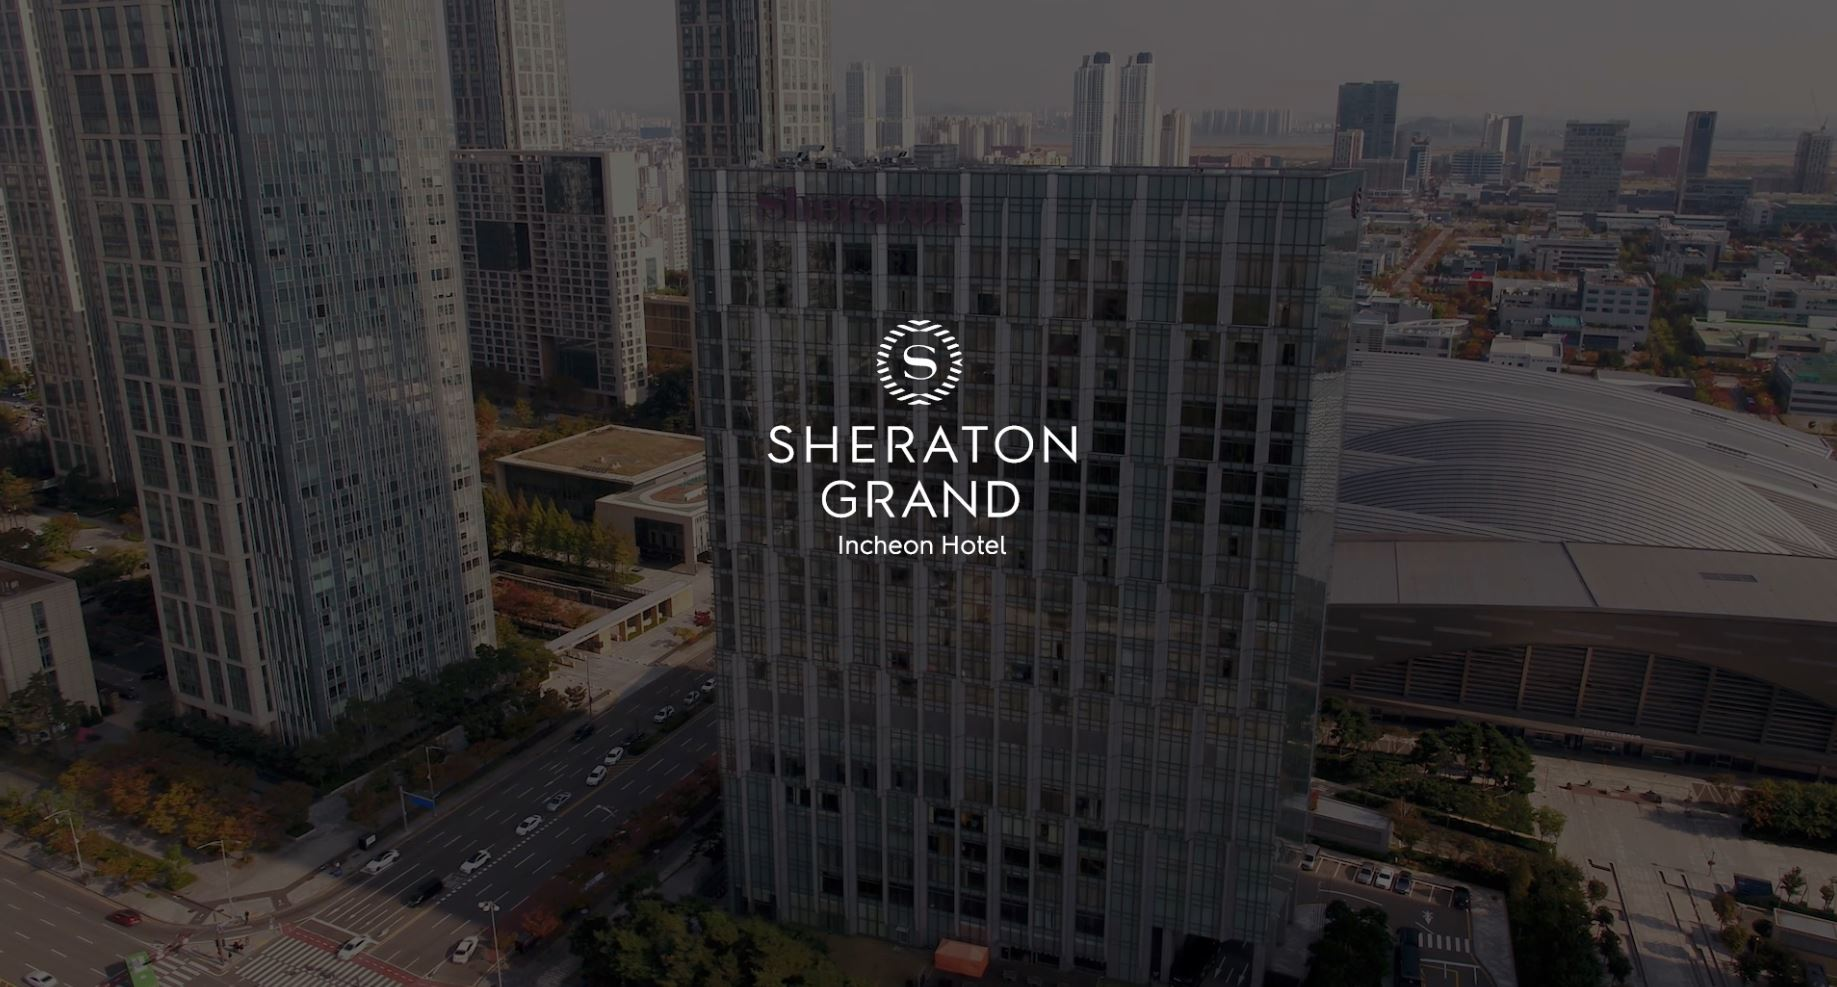 Sheraton Grand Incheon Hotel_MASTER_English의 썸네일